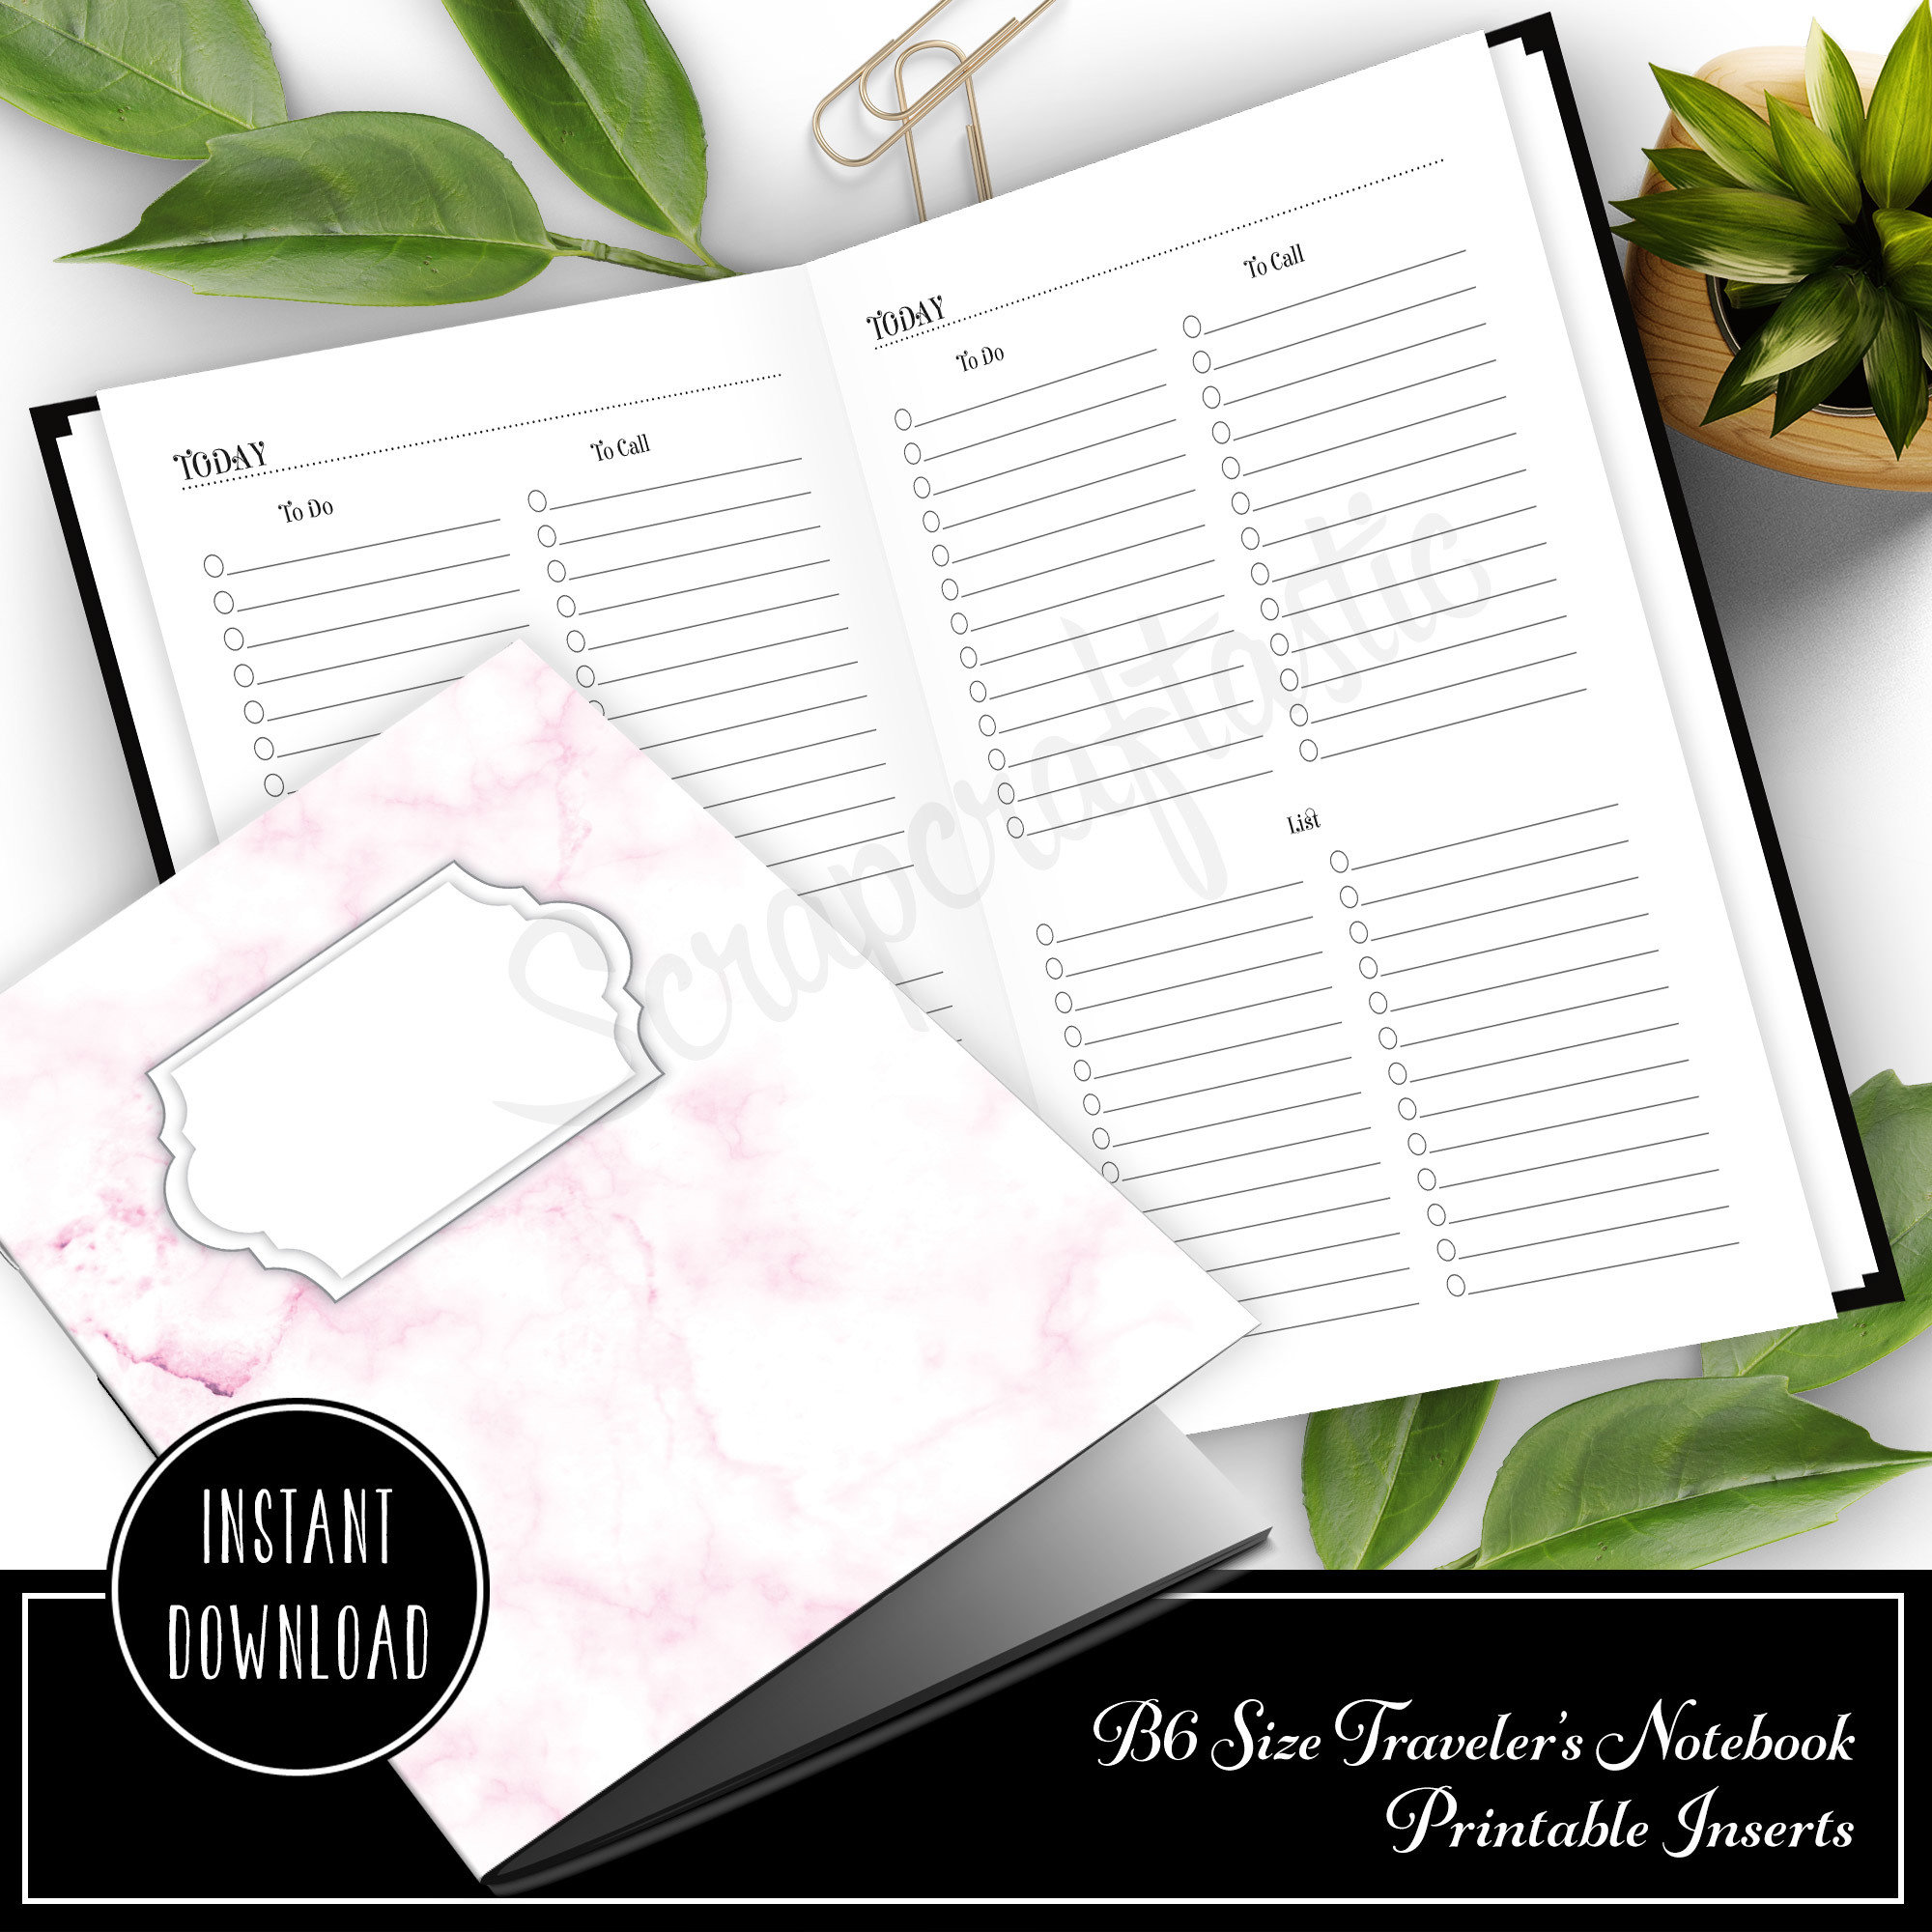 Multi List {PRINTED} B6 Size Traveler's Notebook Printable Planner Inserts 50015P